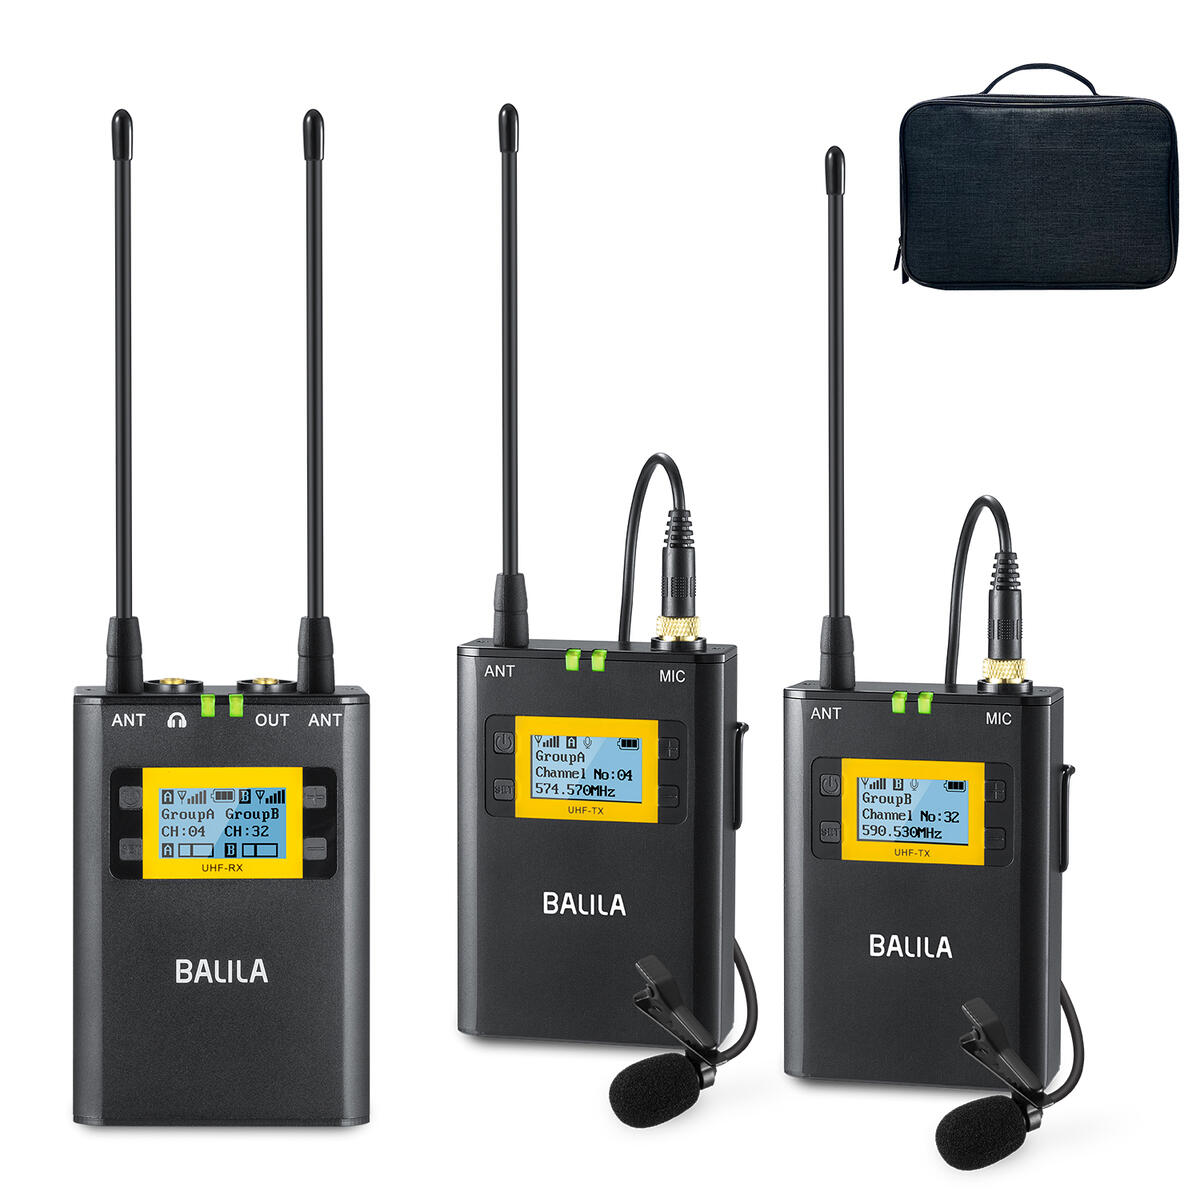 BALILA Wireless Lavalier Microphone System, (2TX+RX) All Metal Ultra High-Frequency UHF 100-Channel Wireless Lavalier Microphone for DSLR Cameras, XLR Camcorder, Smartphone, YouTube Live Recording.